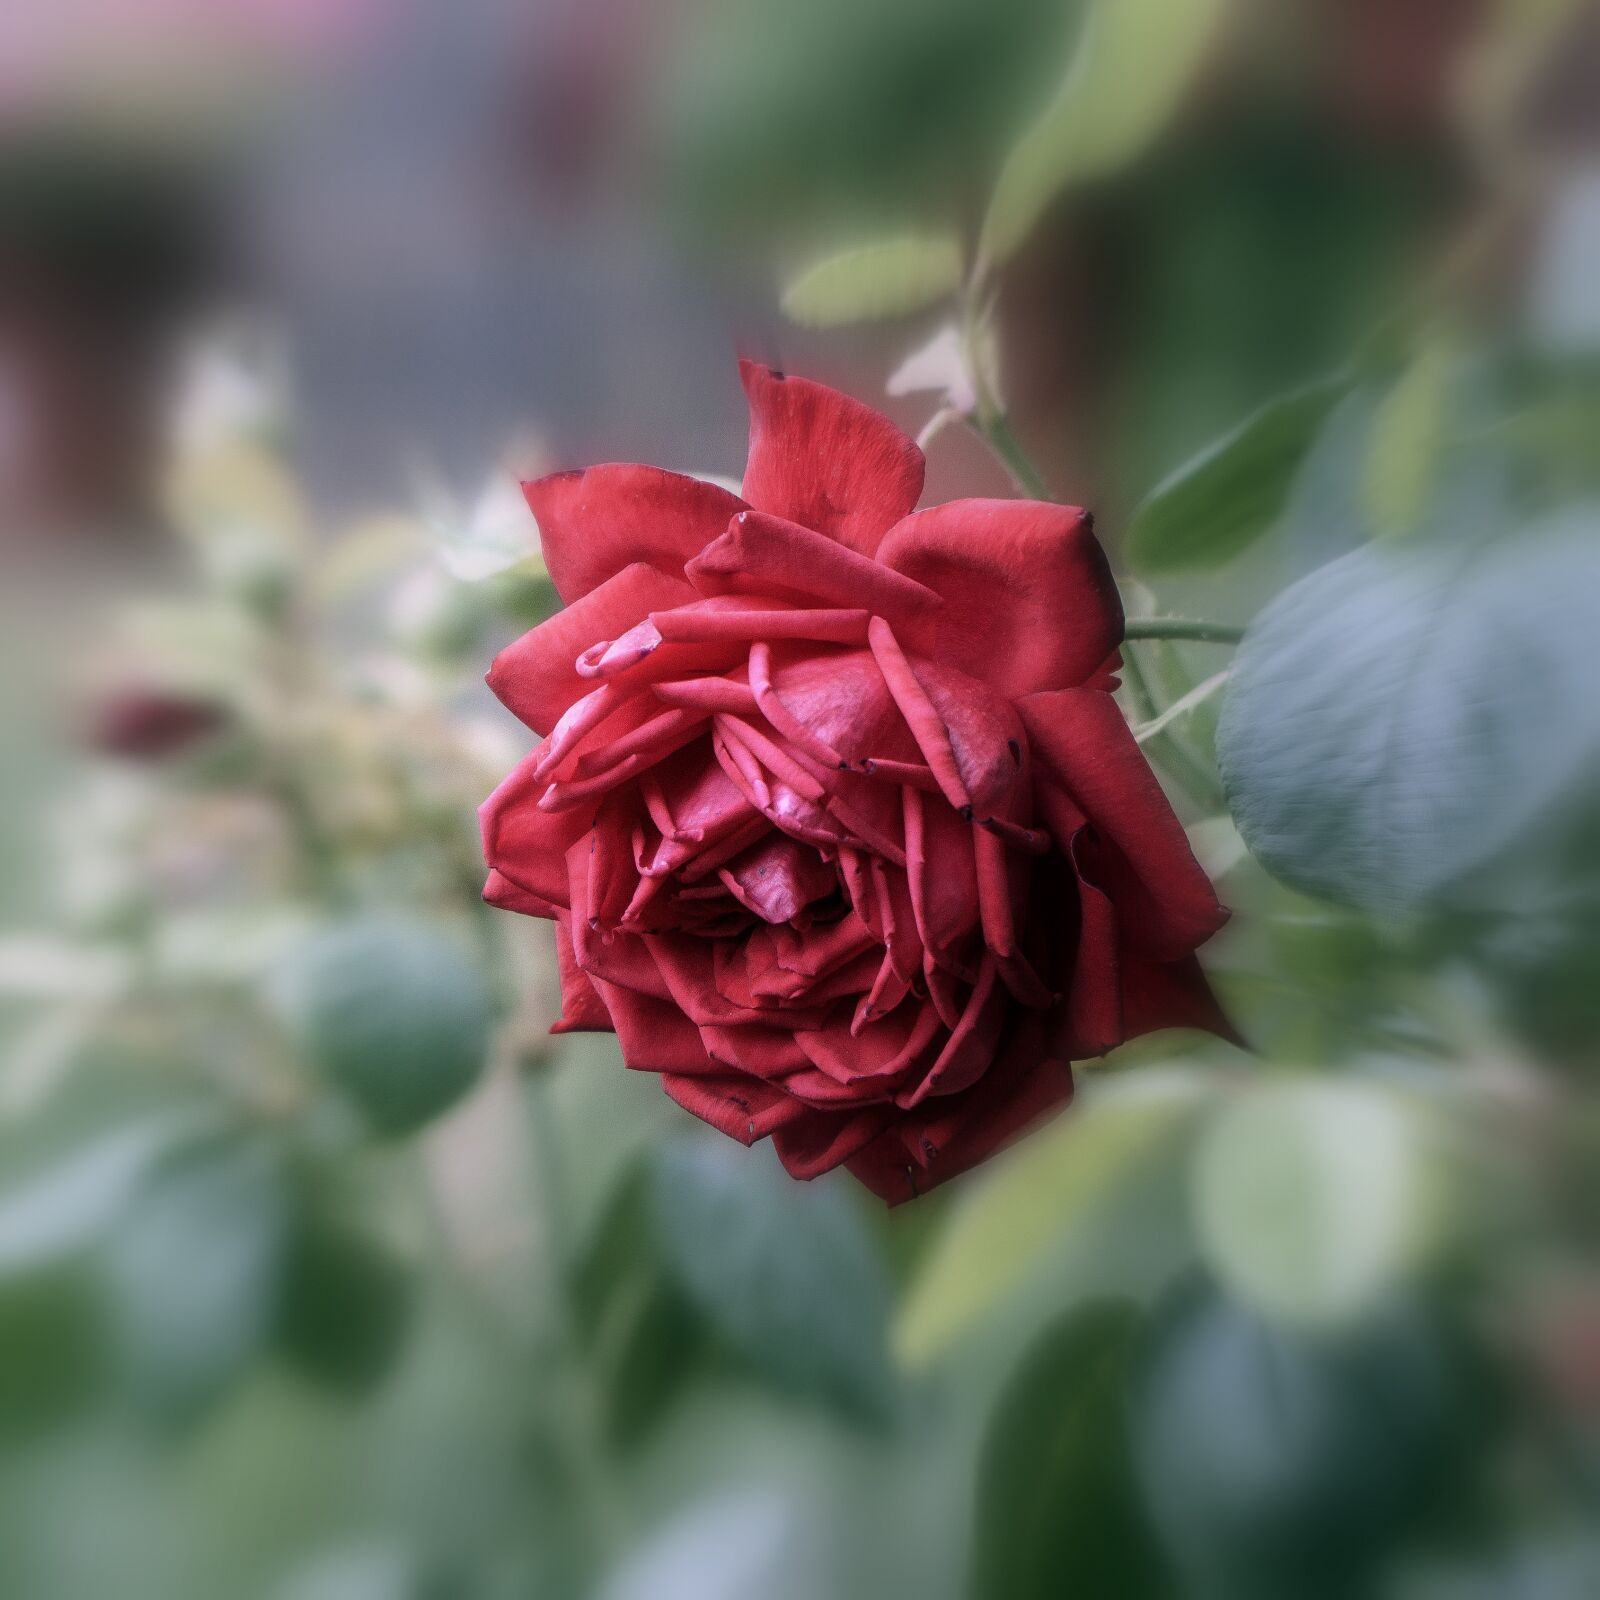 """Sony a6000 sample photo. """"Rosa, flower, nature"""" photography"""